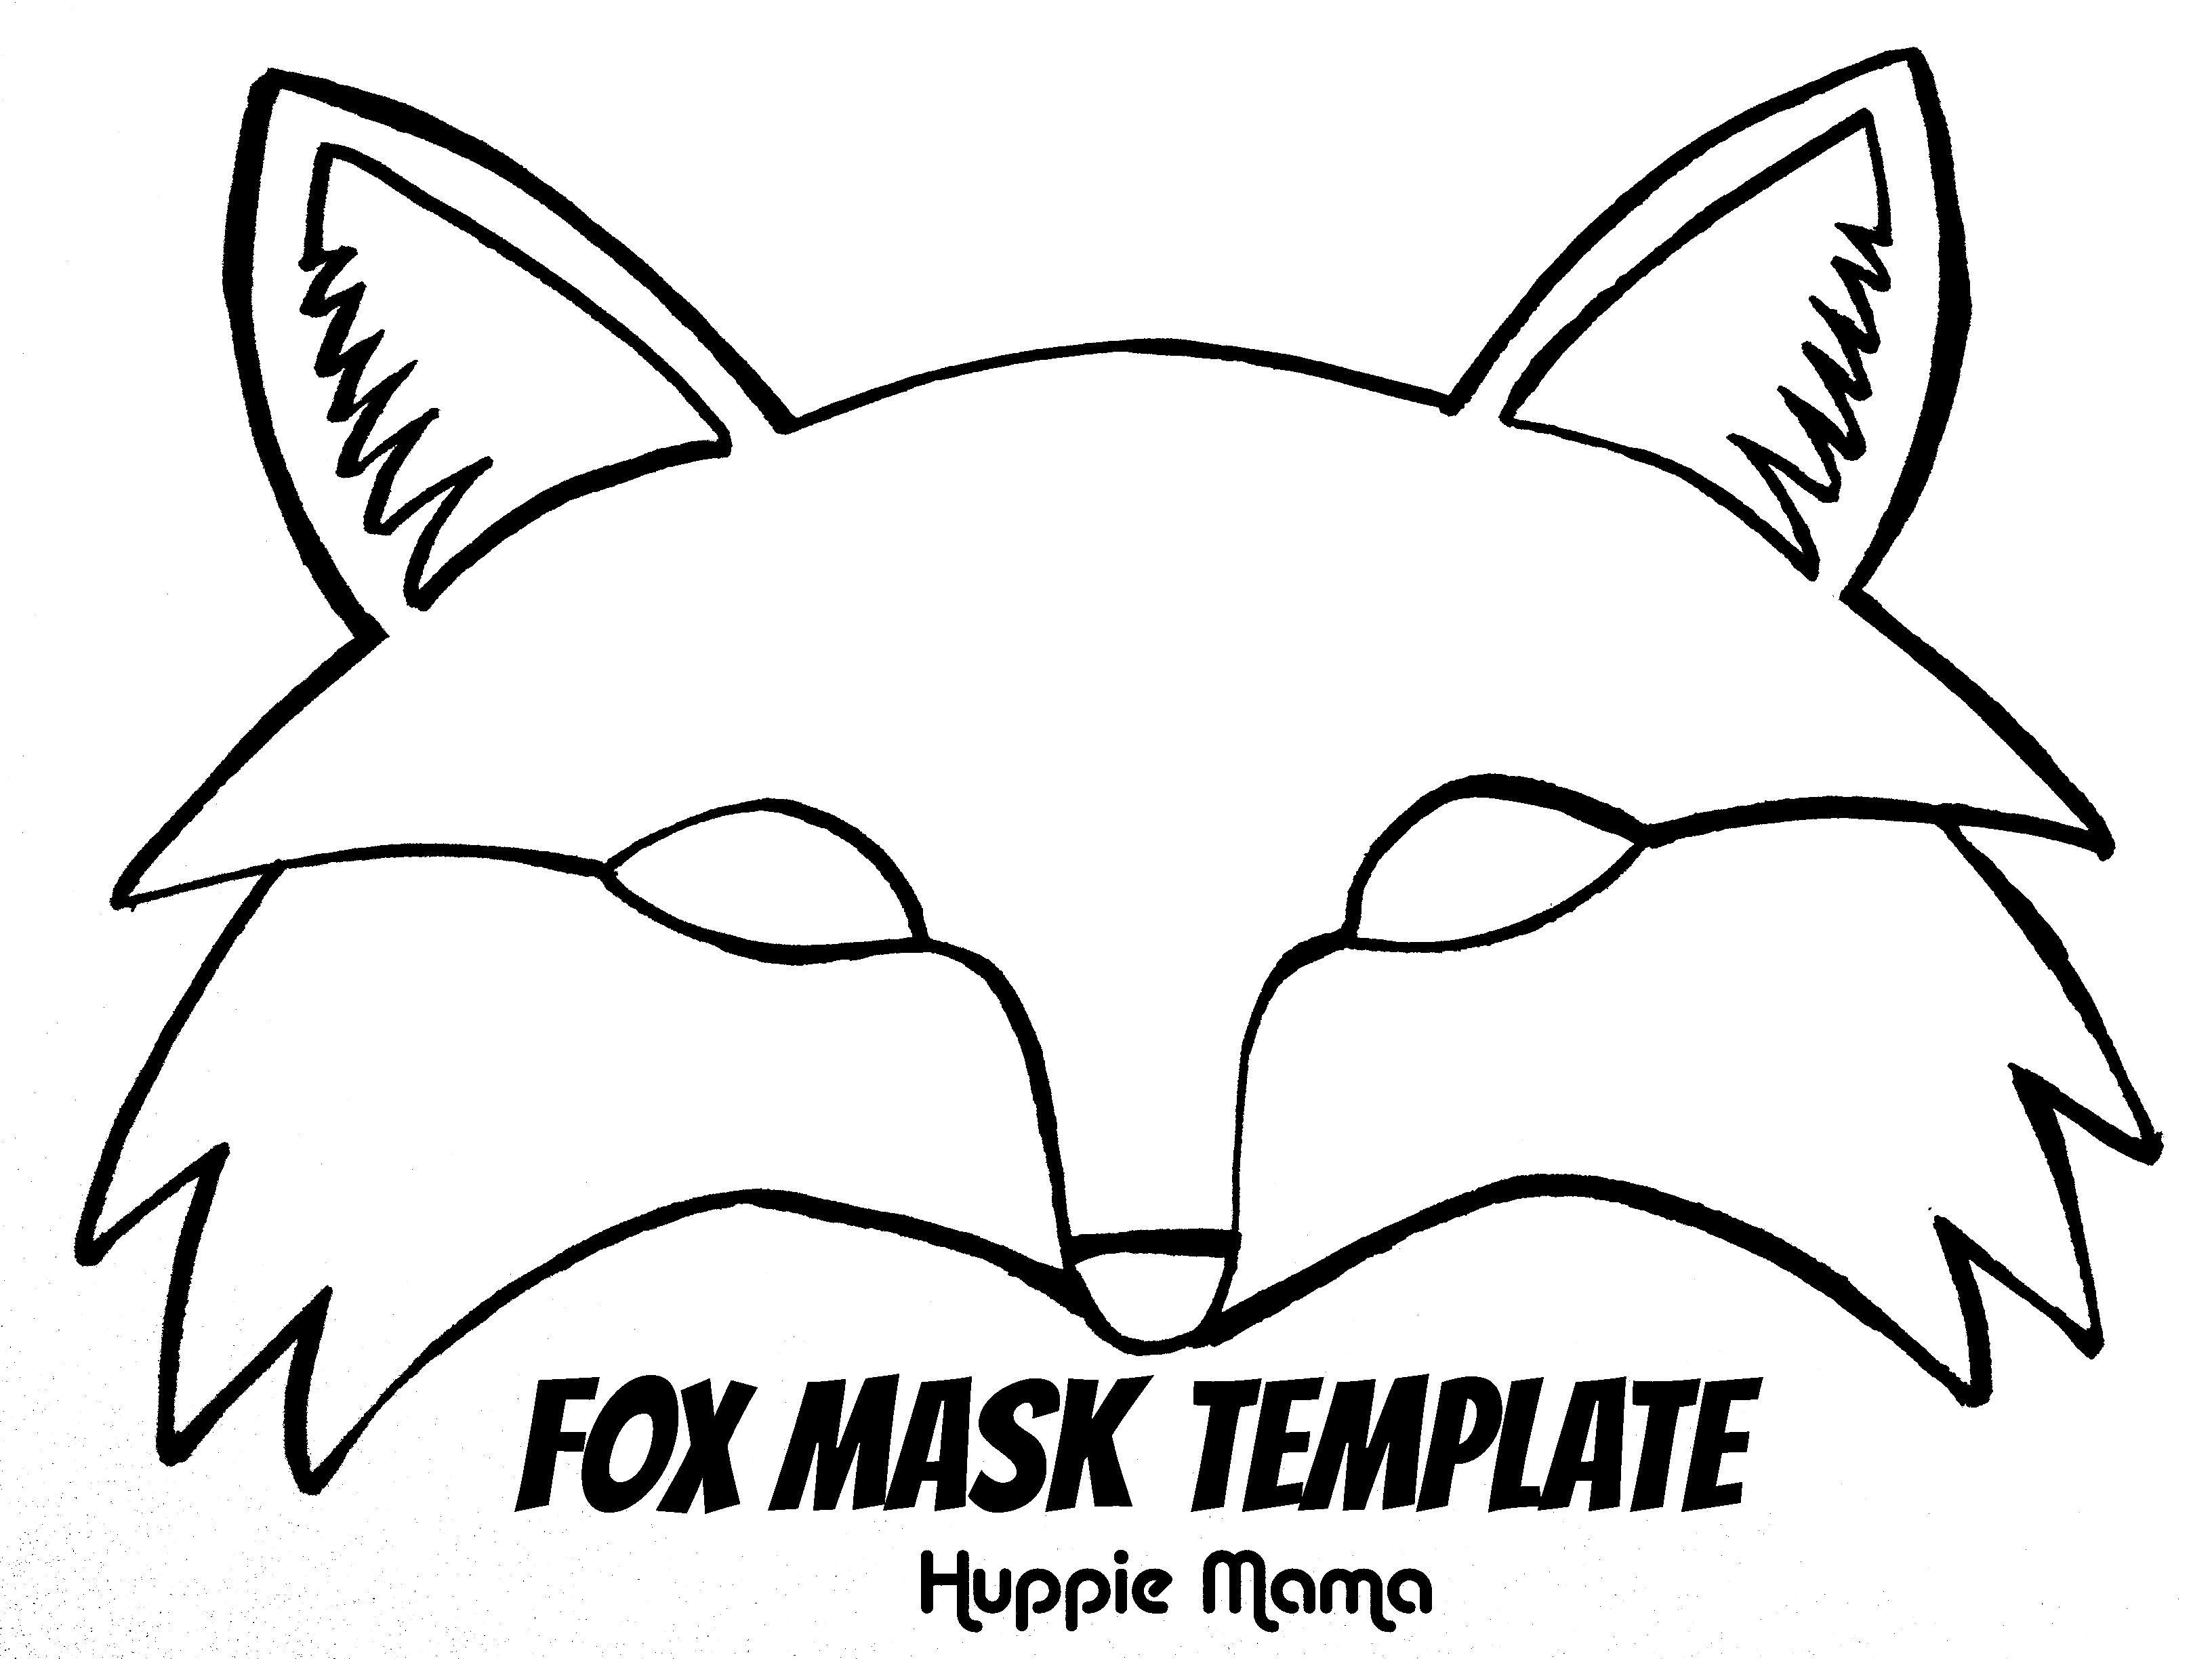 fantastic mr fox mask template - fox template fox mask template foxy fox pinterest